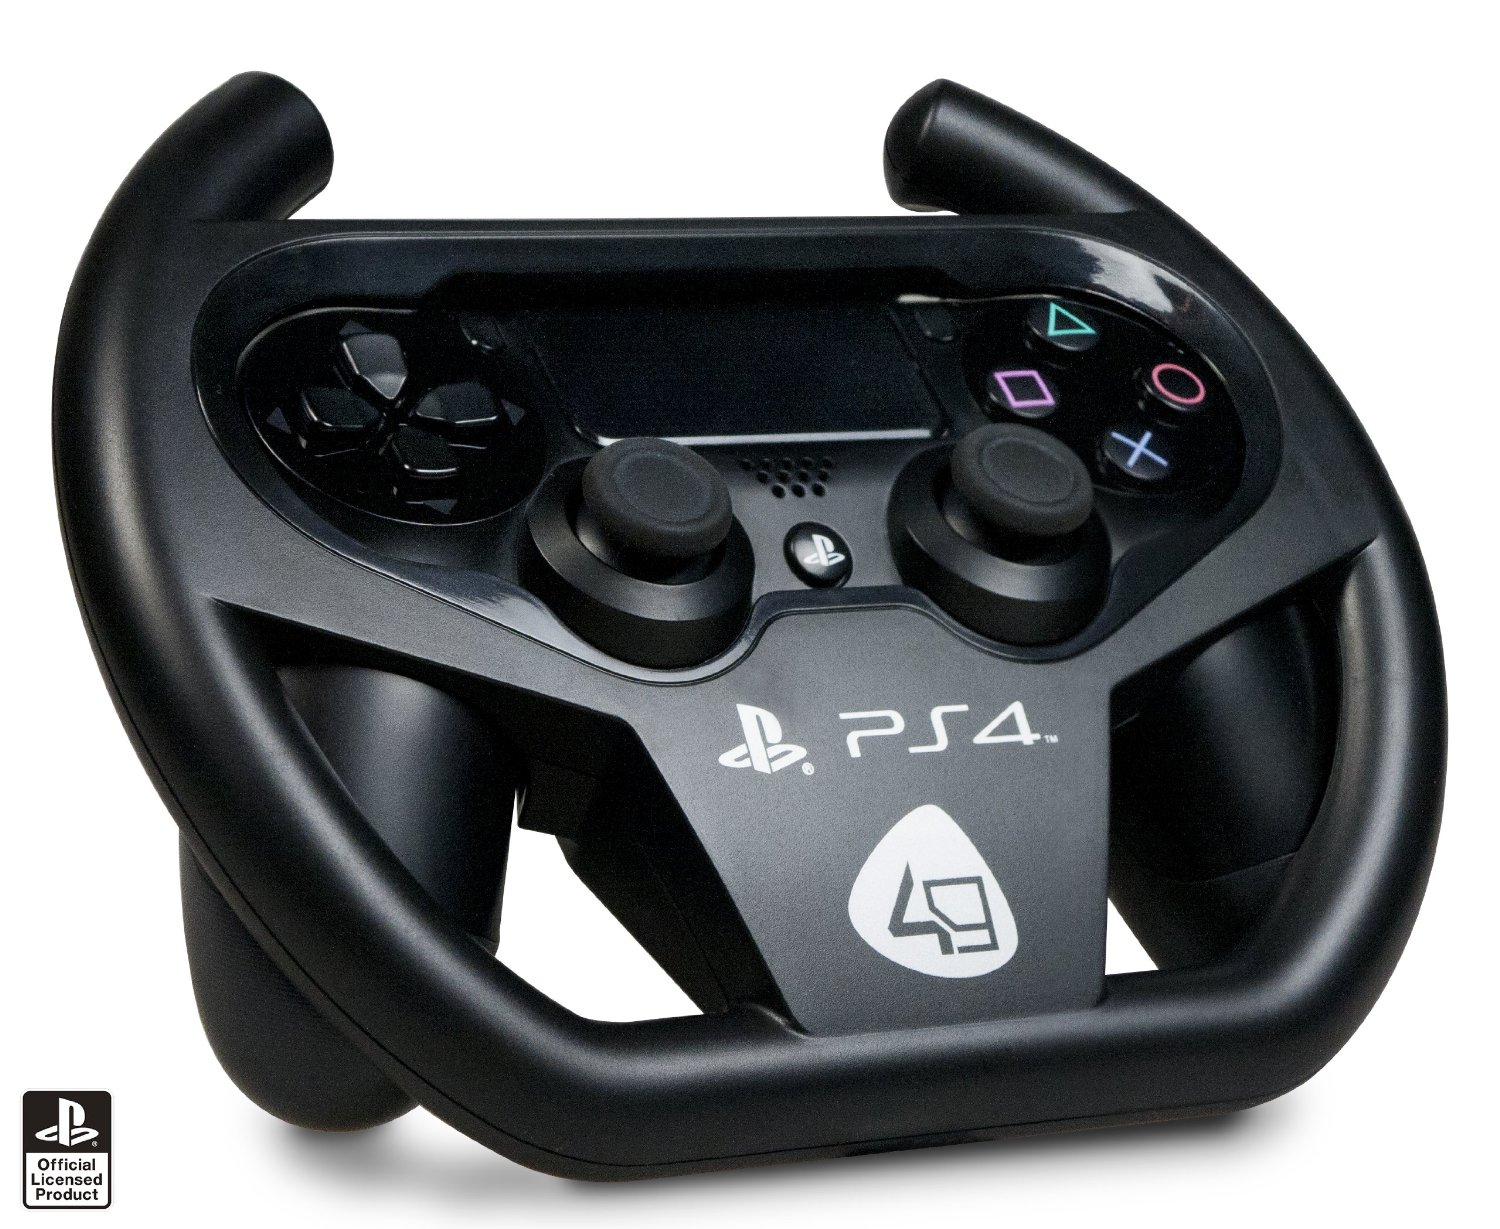 compact racing wheel ps4 playstation 4 brand new free uk. Black Bedroom Furniture Sets. Home Design Ideas